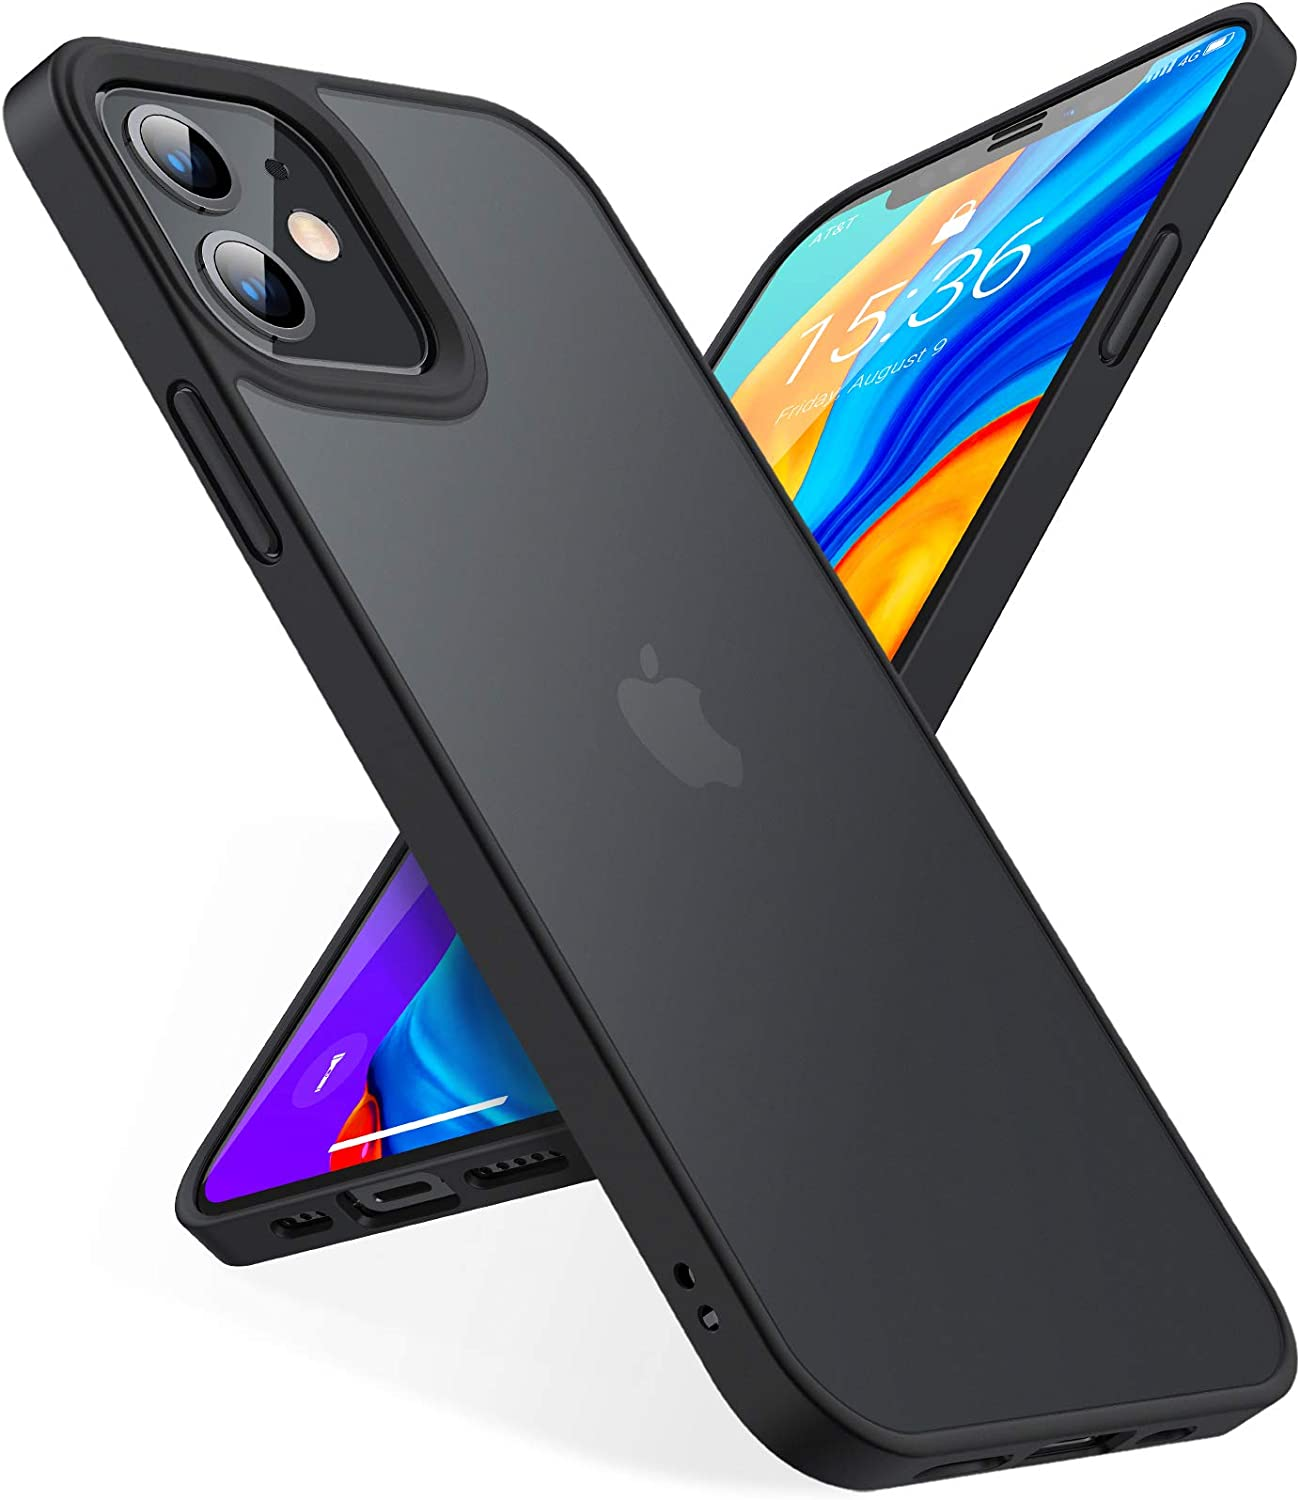 TORRAS Shockproof Designed for iPhone 12 Mini Case 5.4 Inch [Military Grade Drop Tested] Translucent Matte Hard Case with Soft Silicone Bumper, Slim Fit Protective Case for iPhone 12 Mini, Black